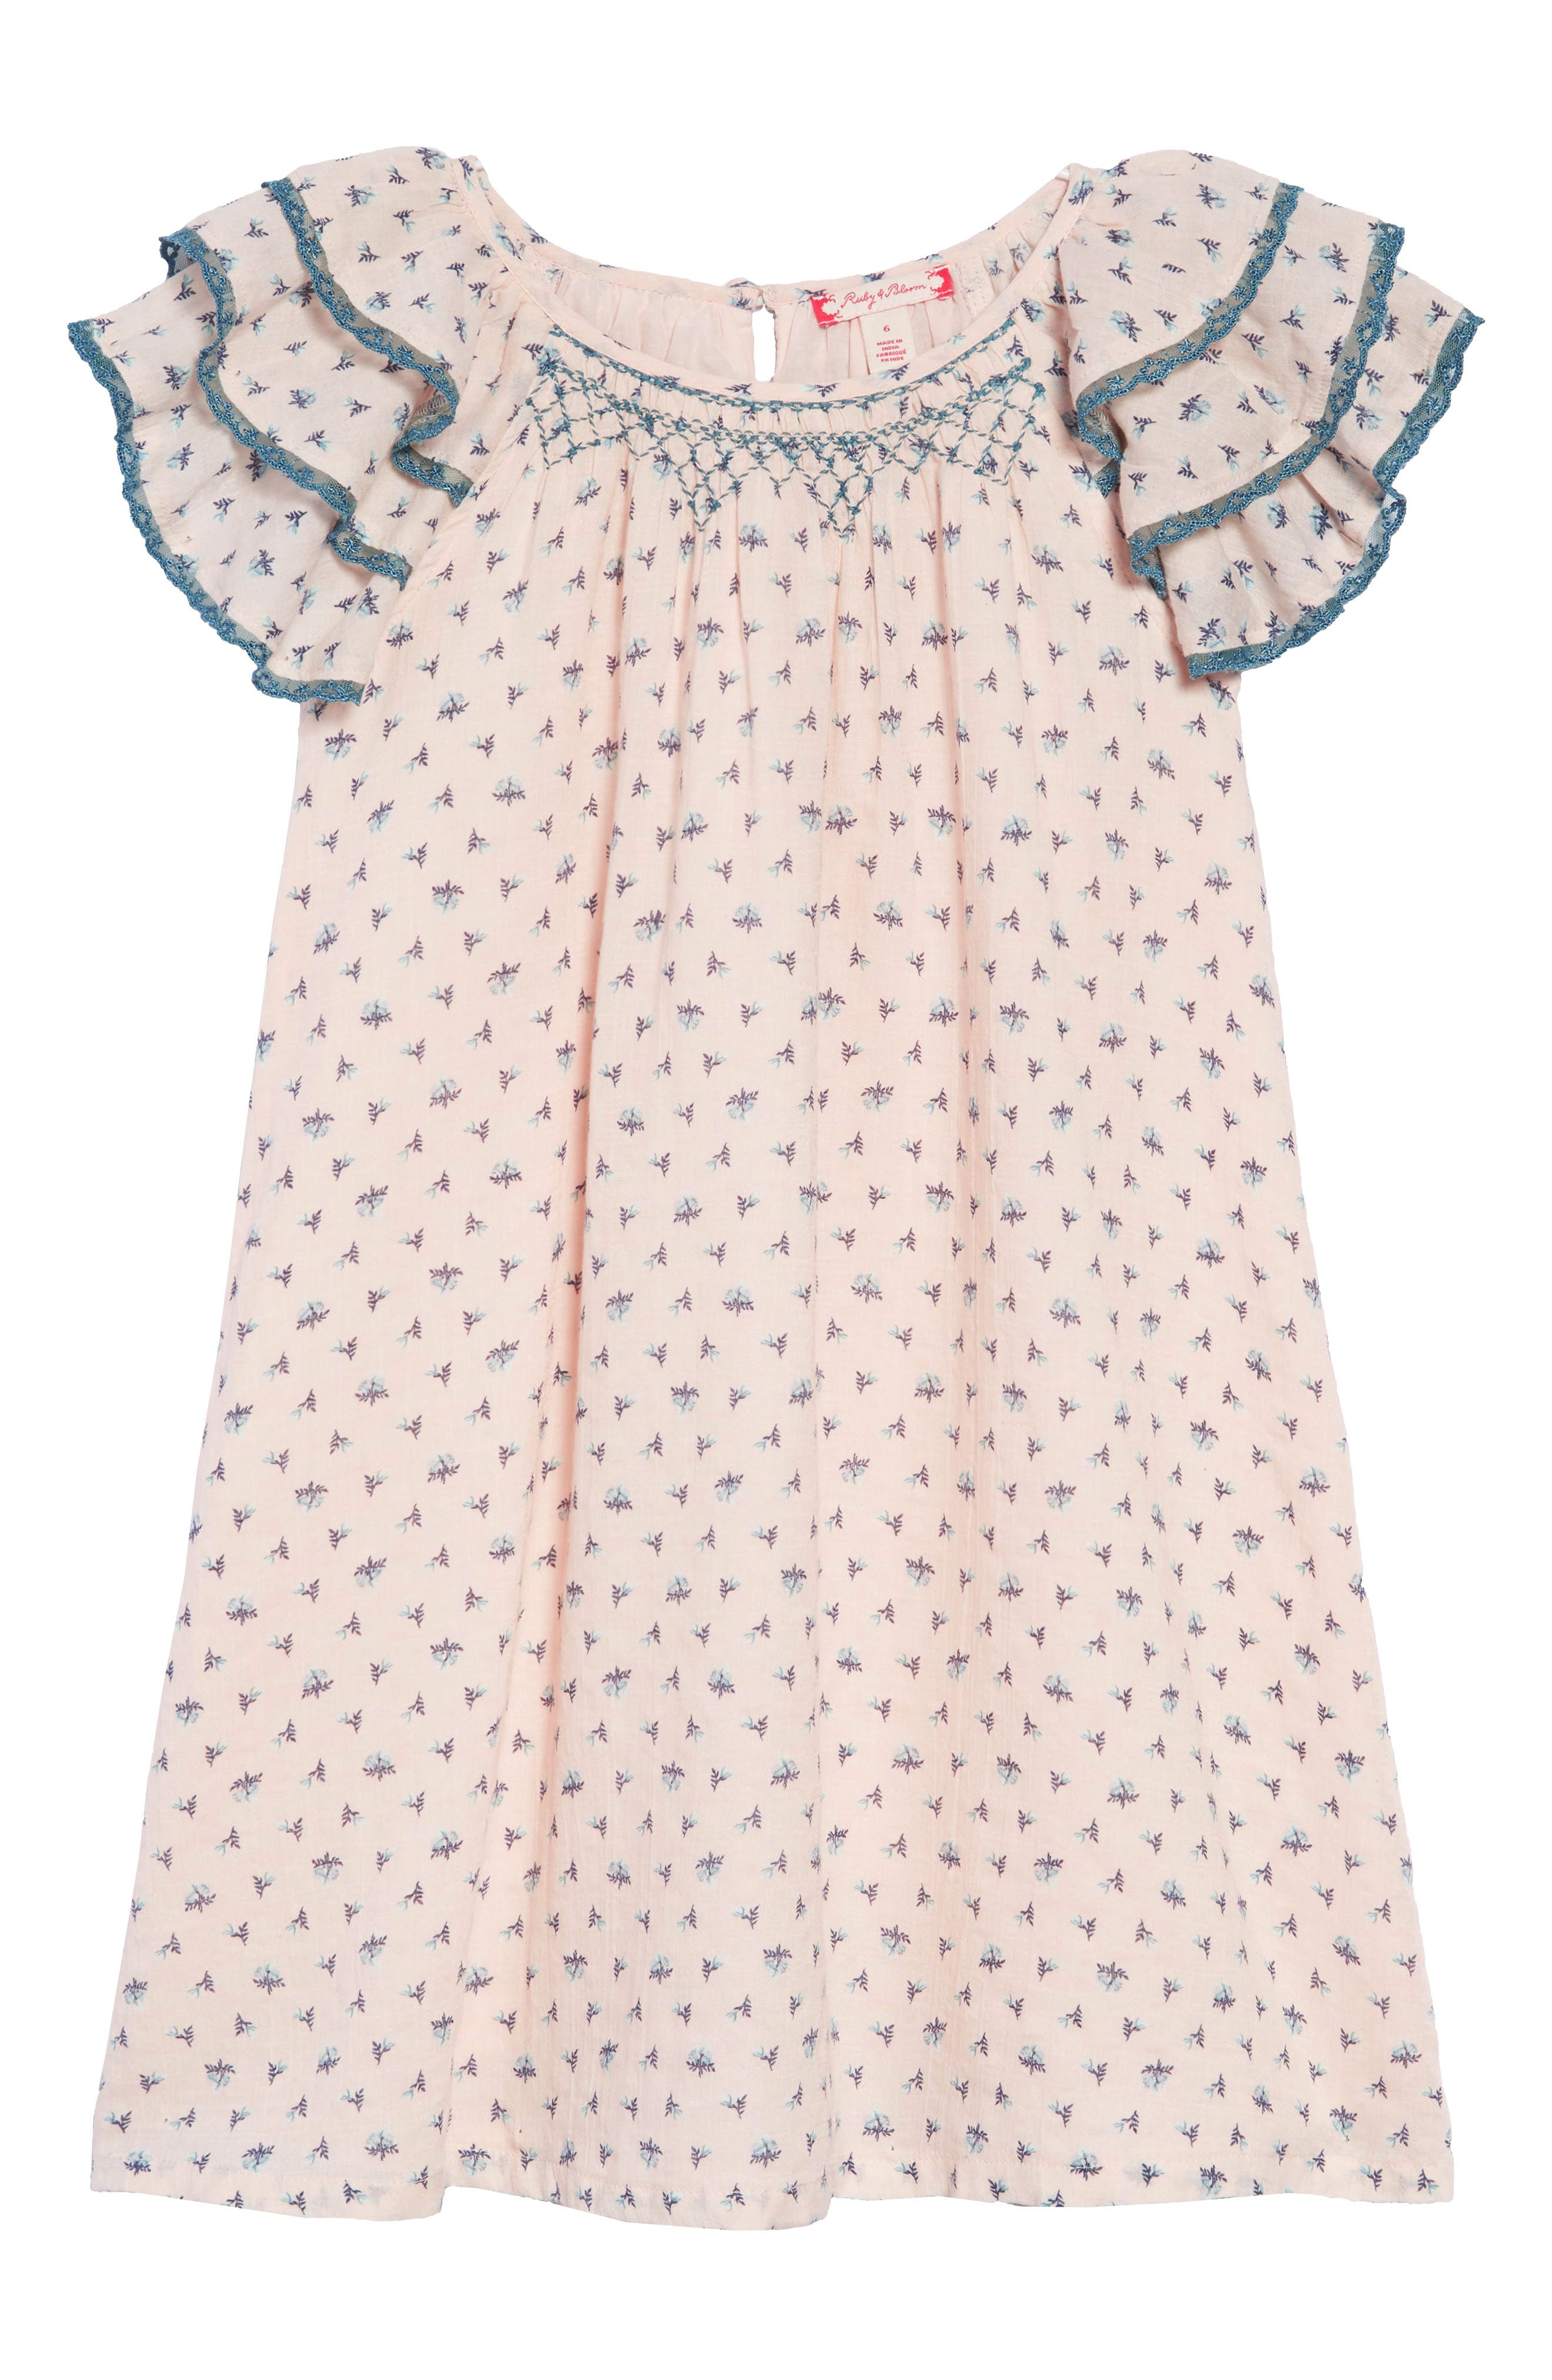 Tiered Sleeve Dress,                         Main,                         color, PINK CHINTZ PRIM FLORAL